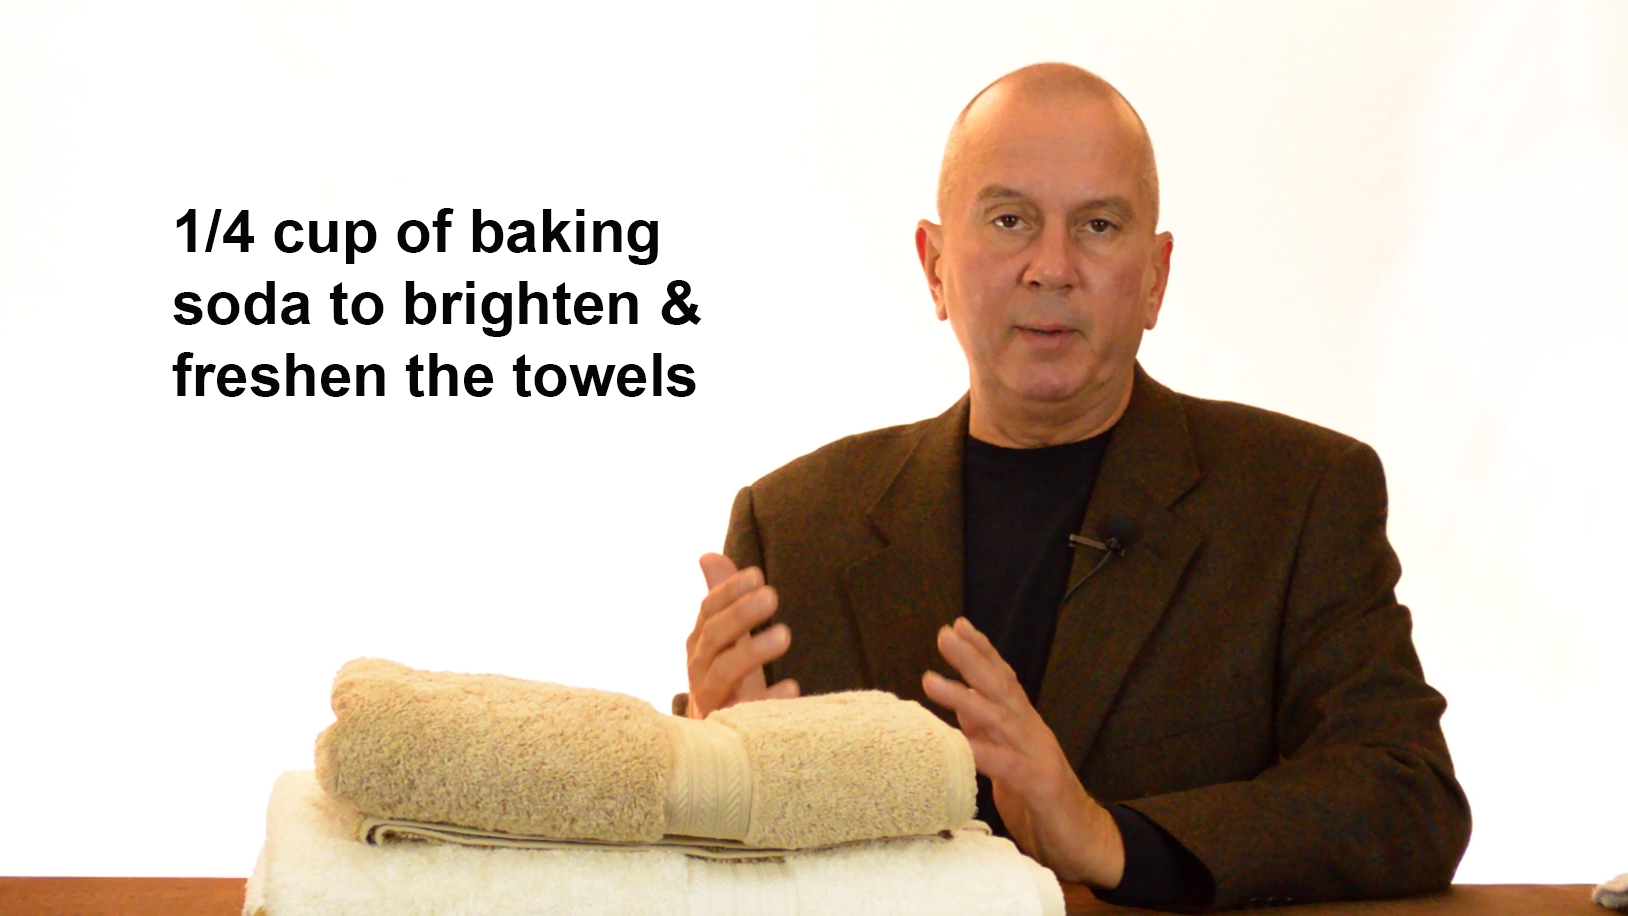 Use a quarter cup of baking soda to brighten towels